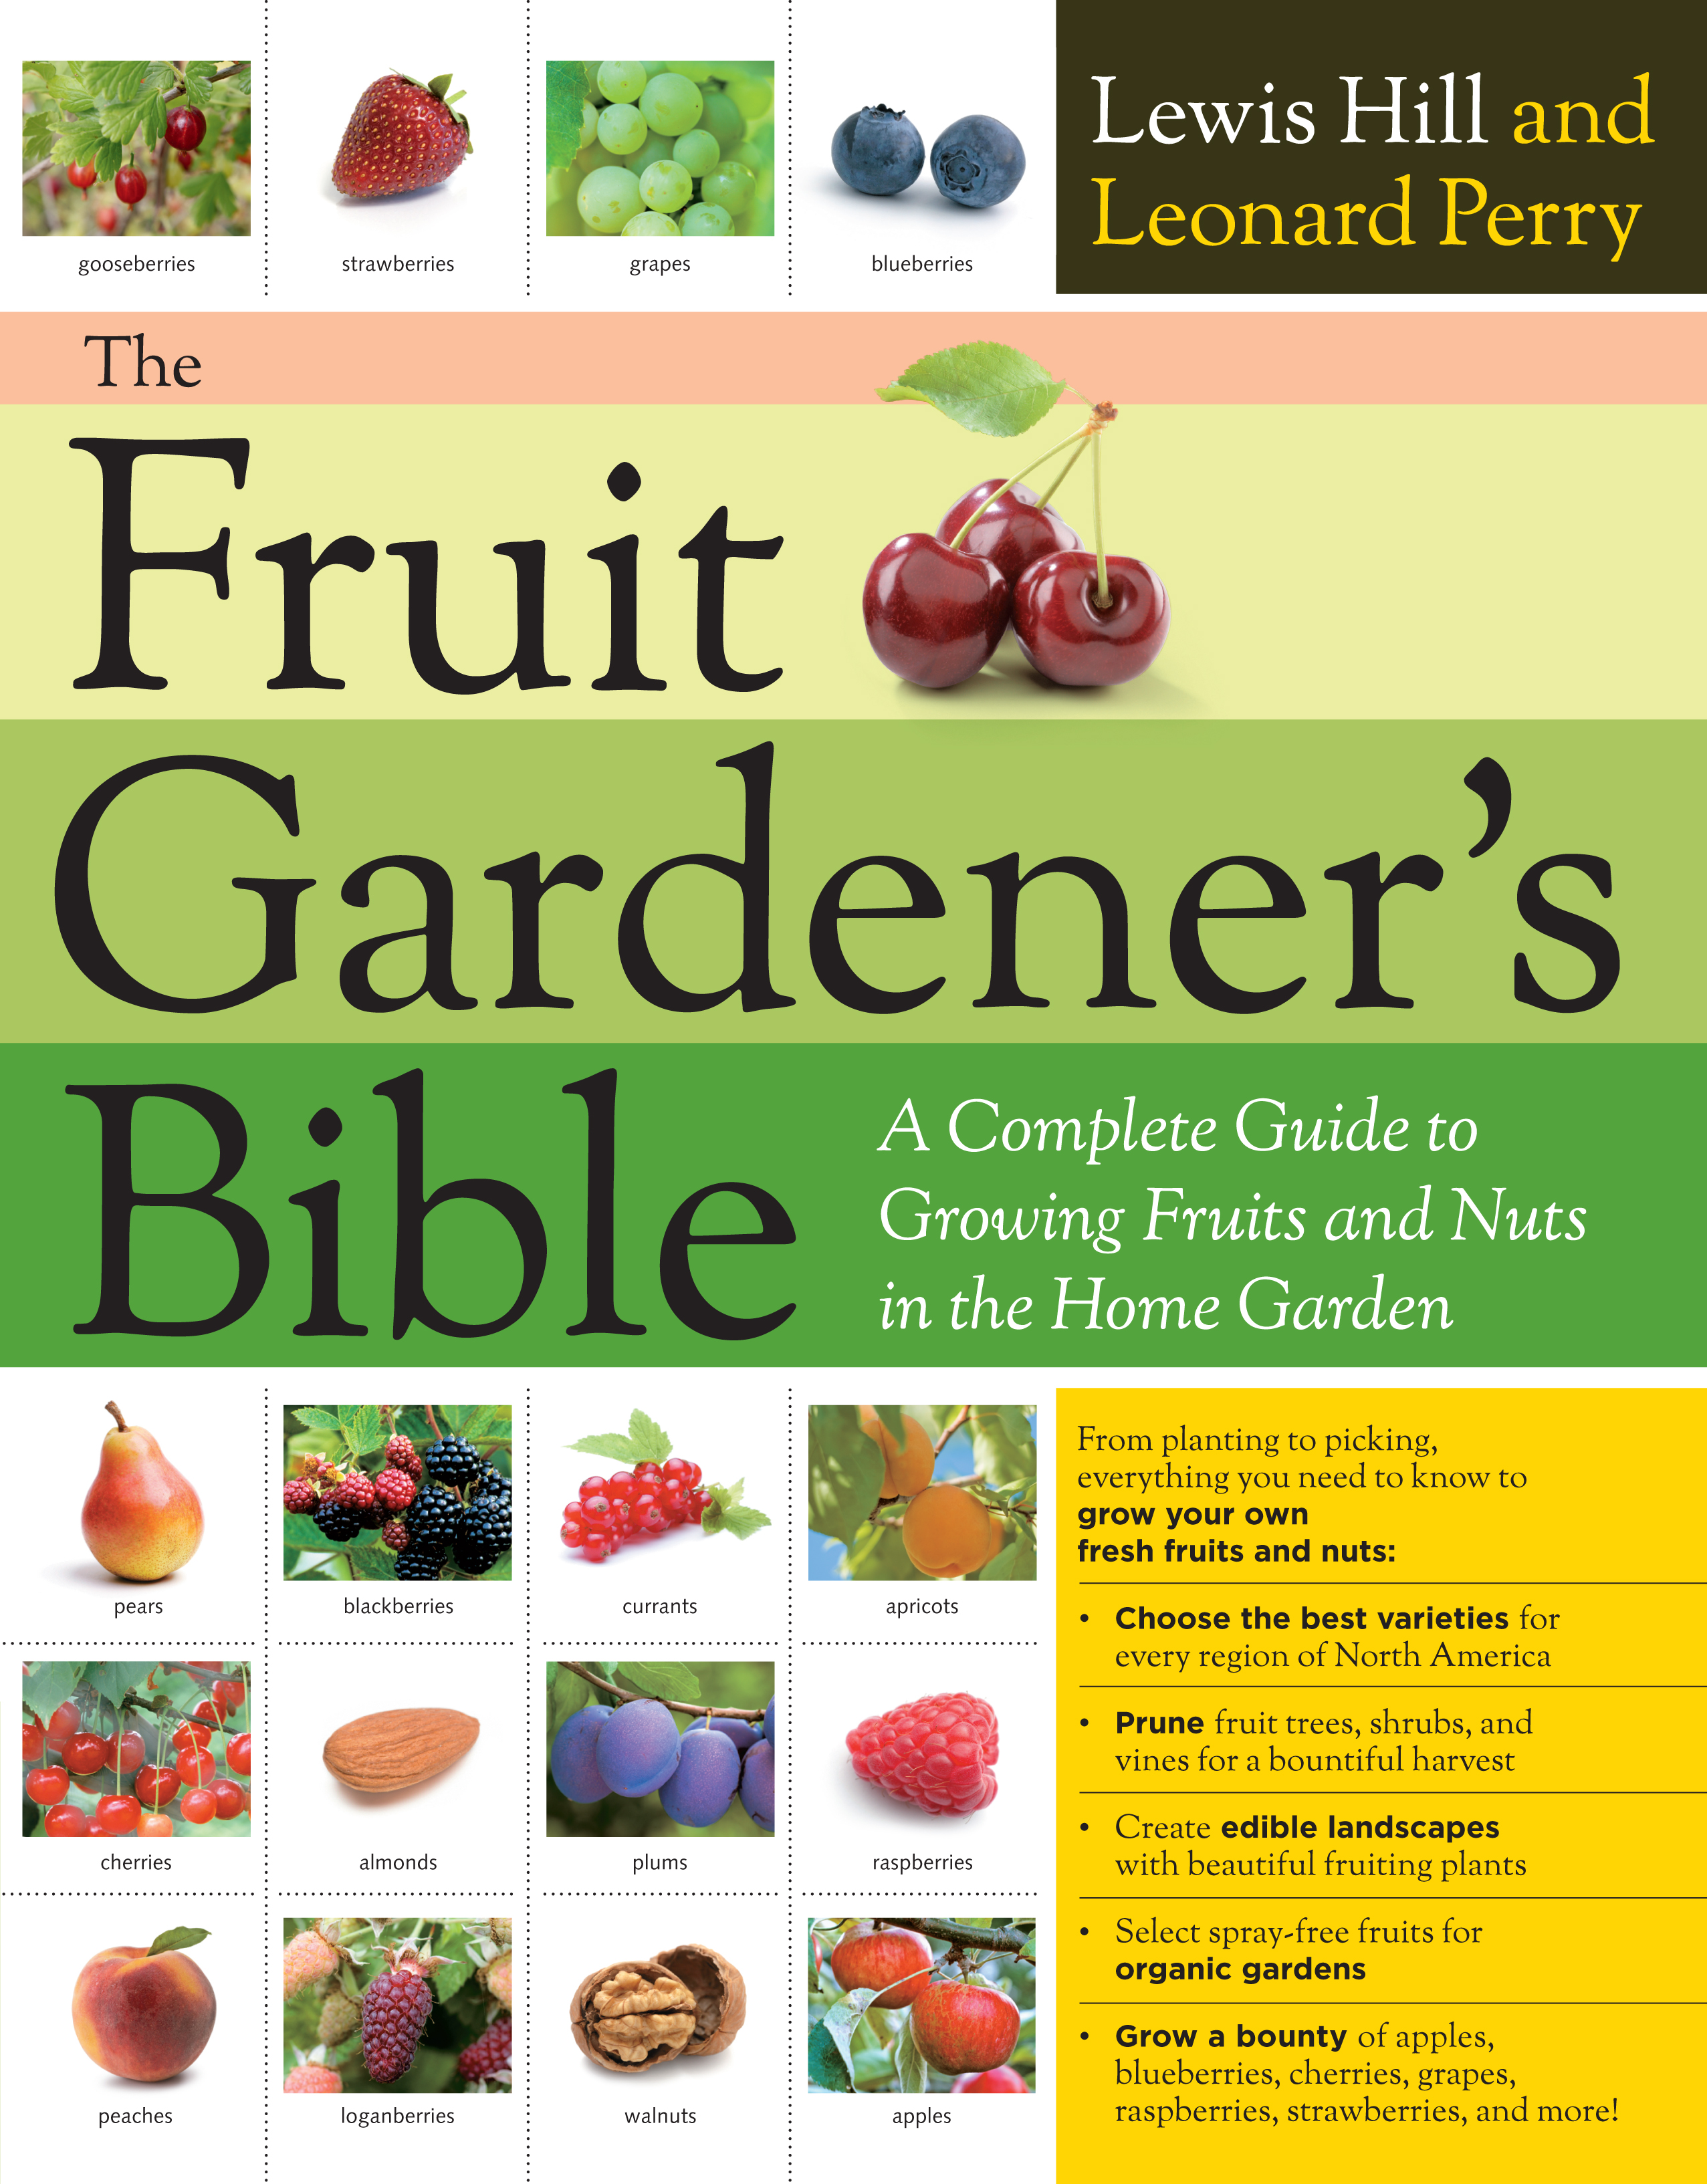 The Fruit Gardener's Bible A Complete Guide to Growing Fruits and Nuts in the Home Garden